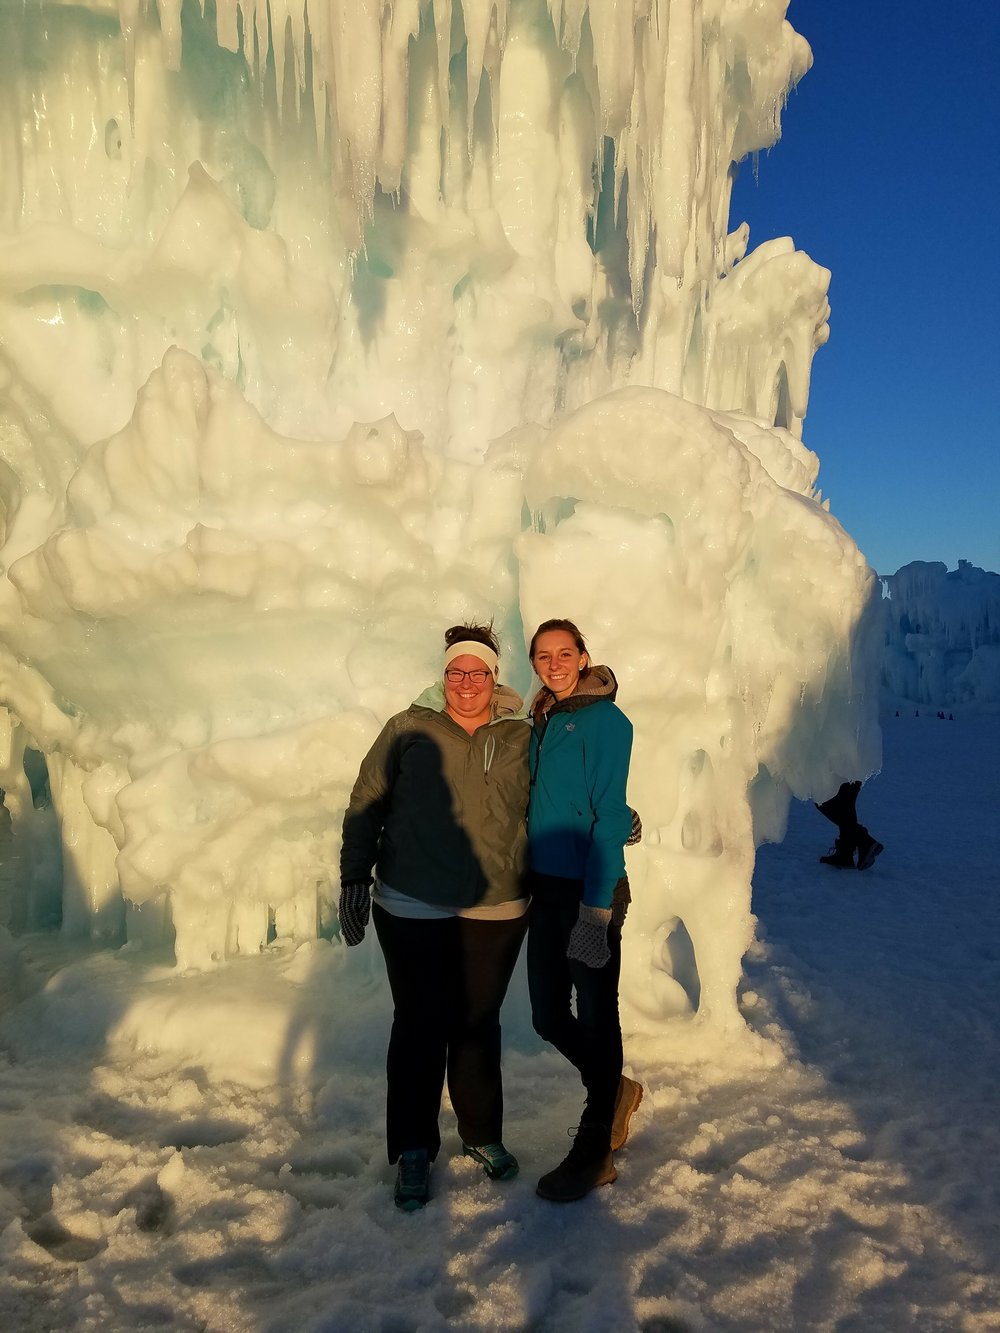 Road trip to the ice castles with the family.